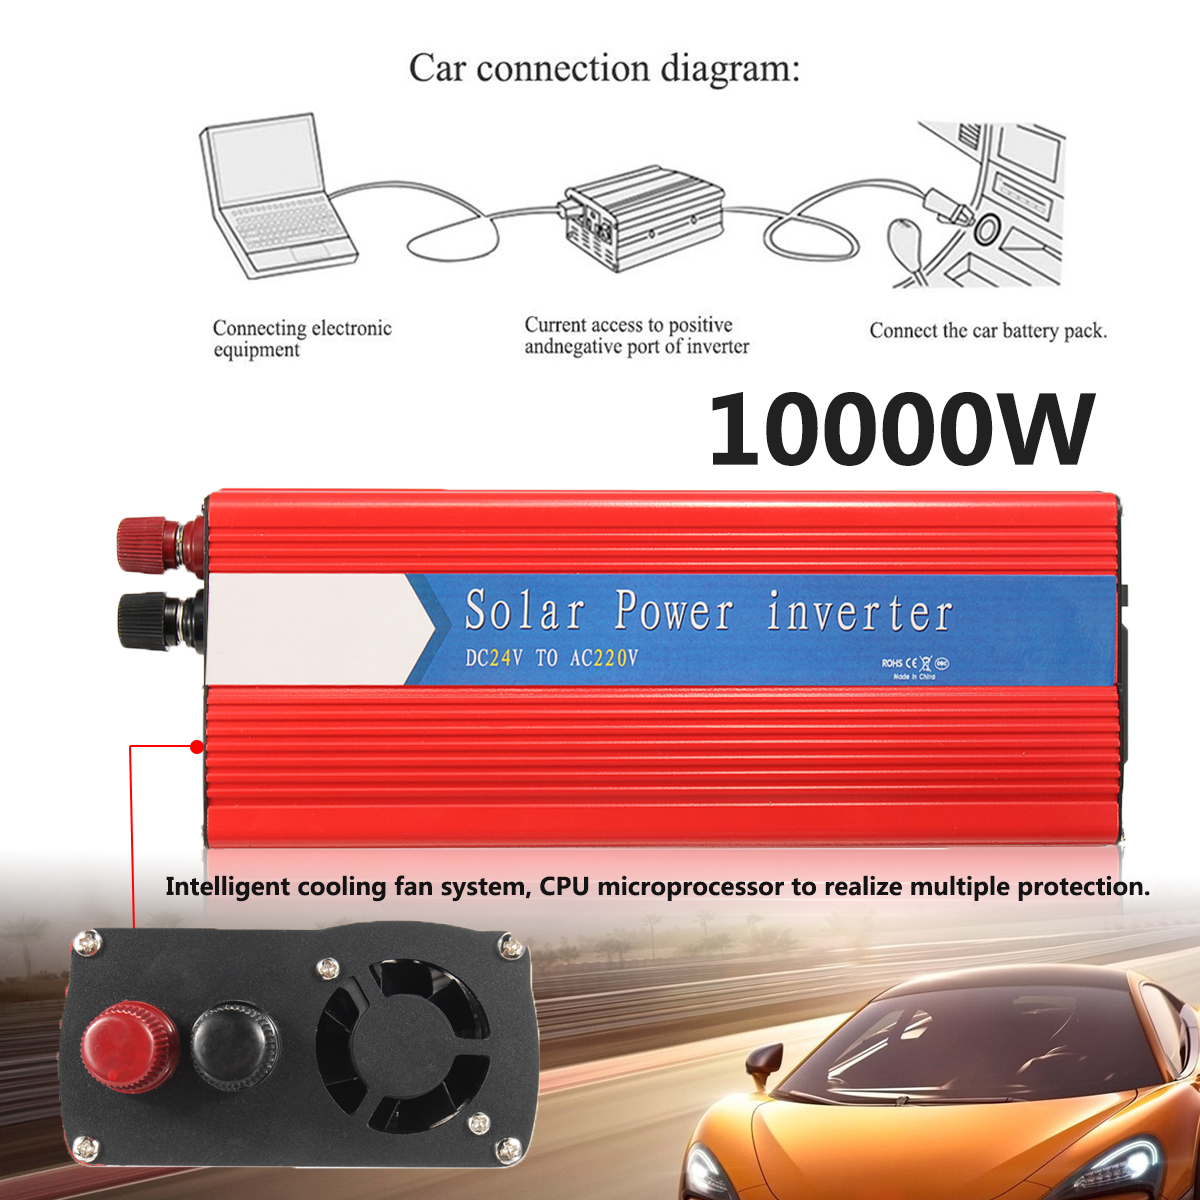 Red Car Power Inverter Converter PEAK 10000W 12/24V To AC 220/110V USB Modified Sine Wave Voltage Transformer Universal 12 24v to ac 220 110v car power inverter converter peak 10000w usb modified sine wave voltage transformer universal intelligent